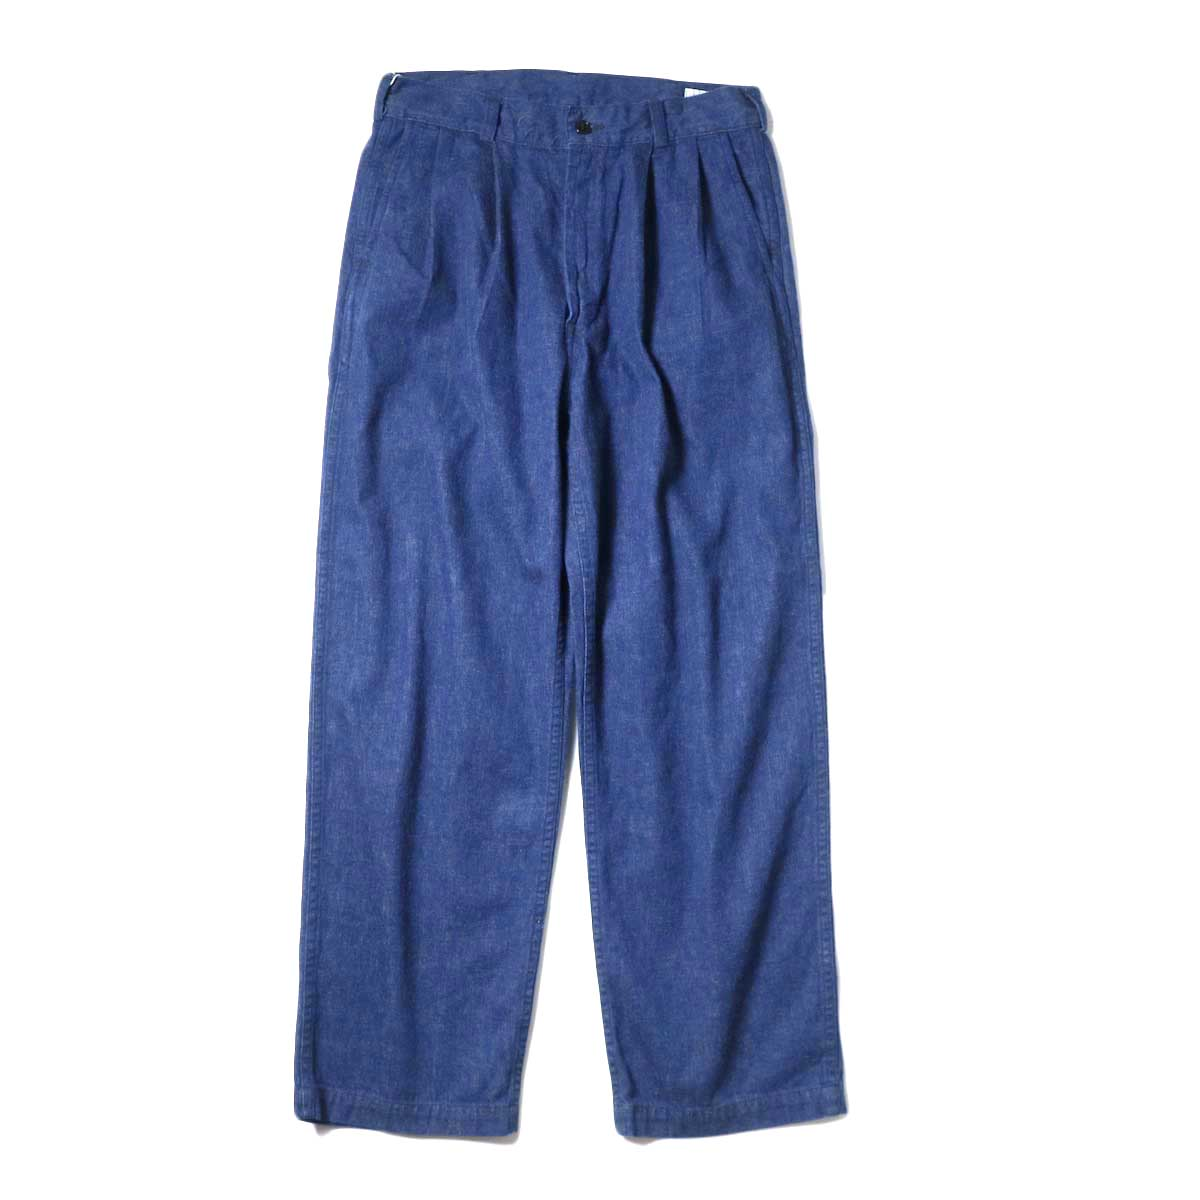 orSlow / TWO TUCK DENIM WIDE TROUSER (Unisex) 正面